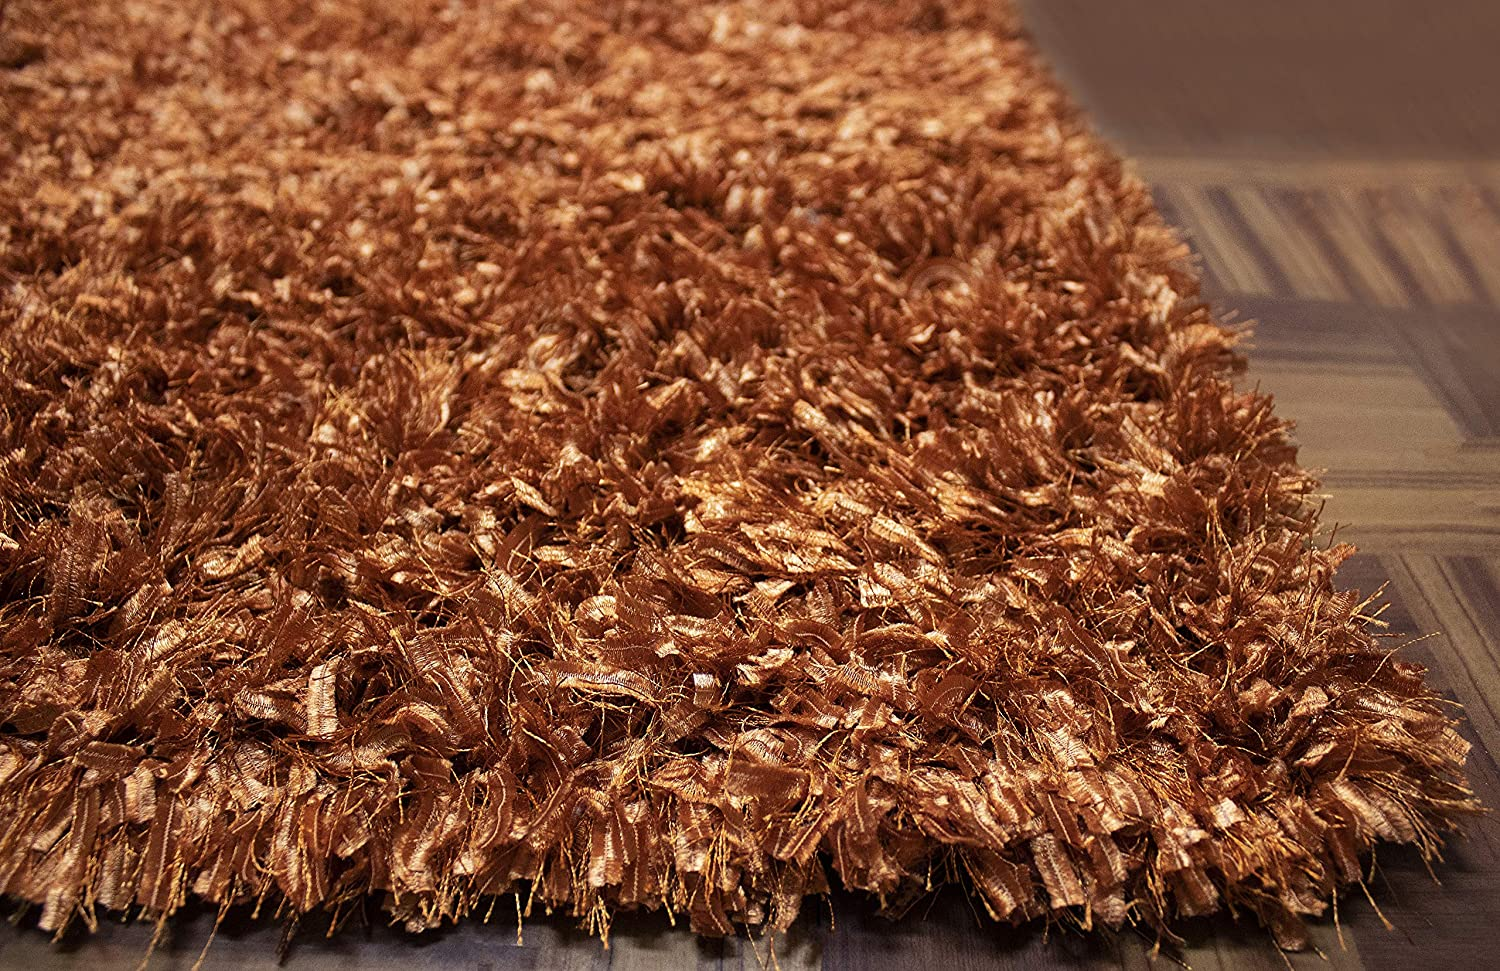 8'x10' Feet Orange Rust Two Tone Color Solid Plush Pile Shag Shaggy Fuzzy Furry Area Rug Carpet Rug Modern Contemporary Decorative Designer Bedroom Living Room Office Space Dorm Room